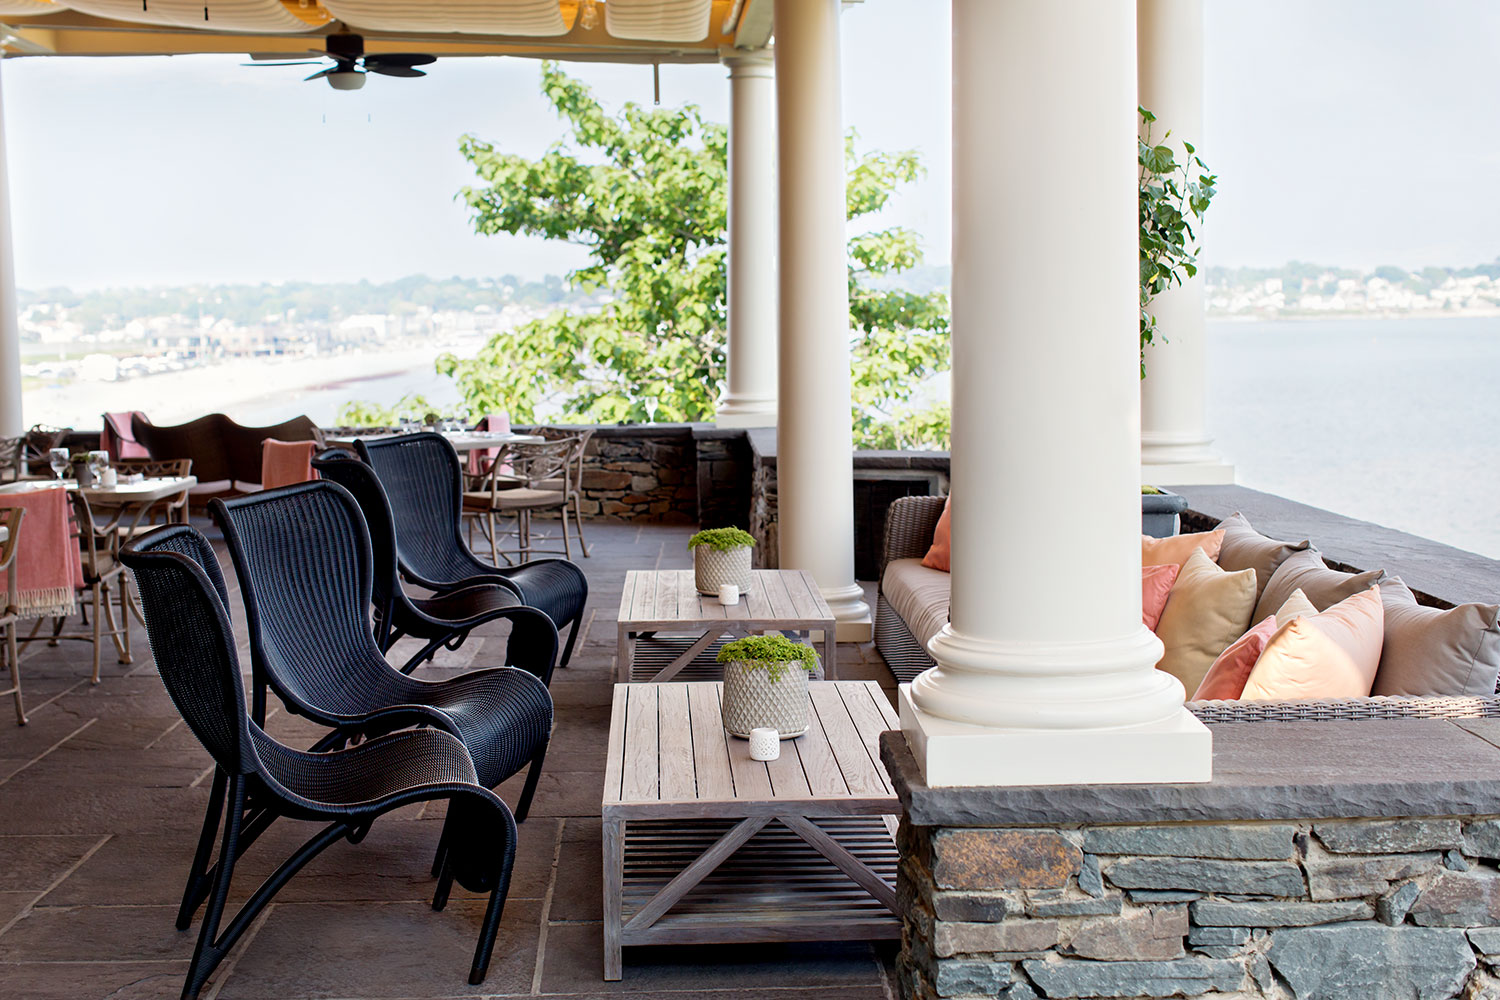 The Spring Fling will take place on The Chanler's Cliff Walk Terrace.